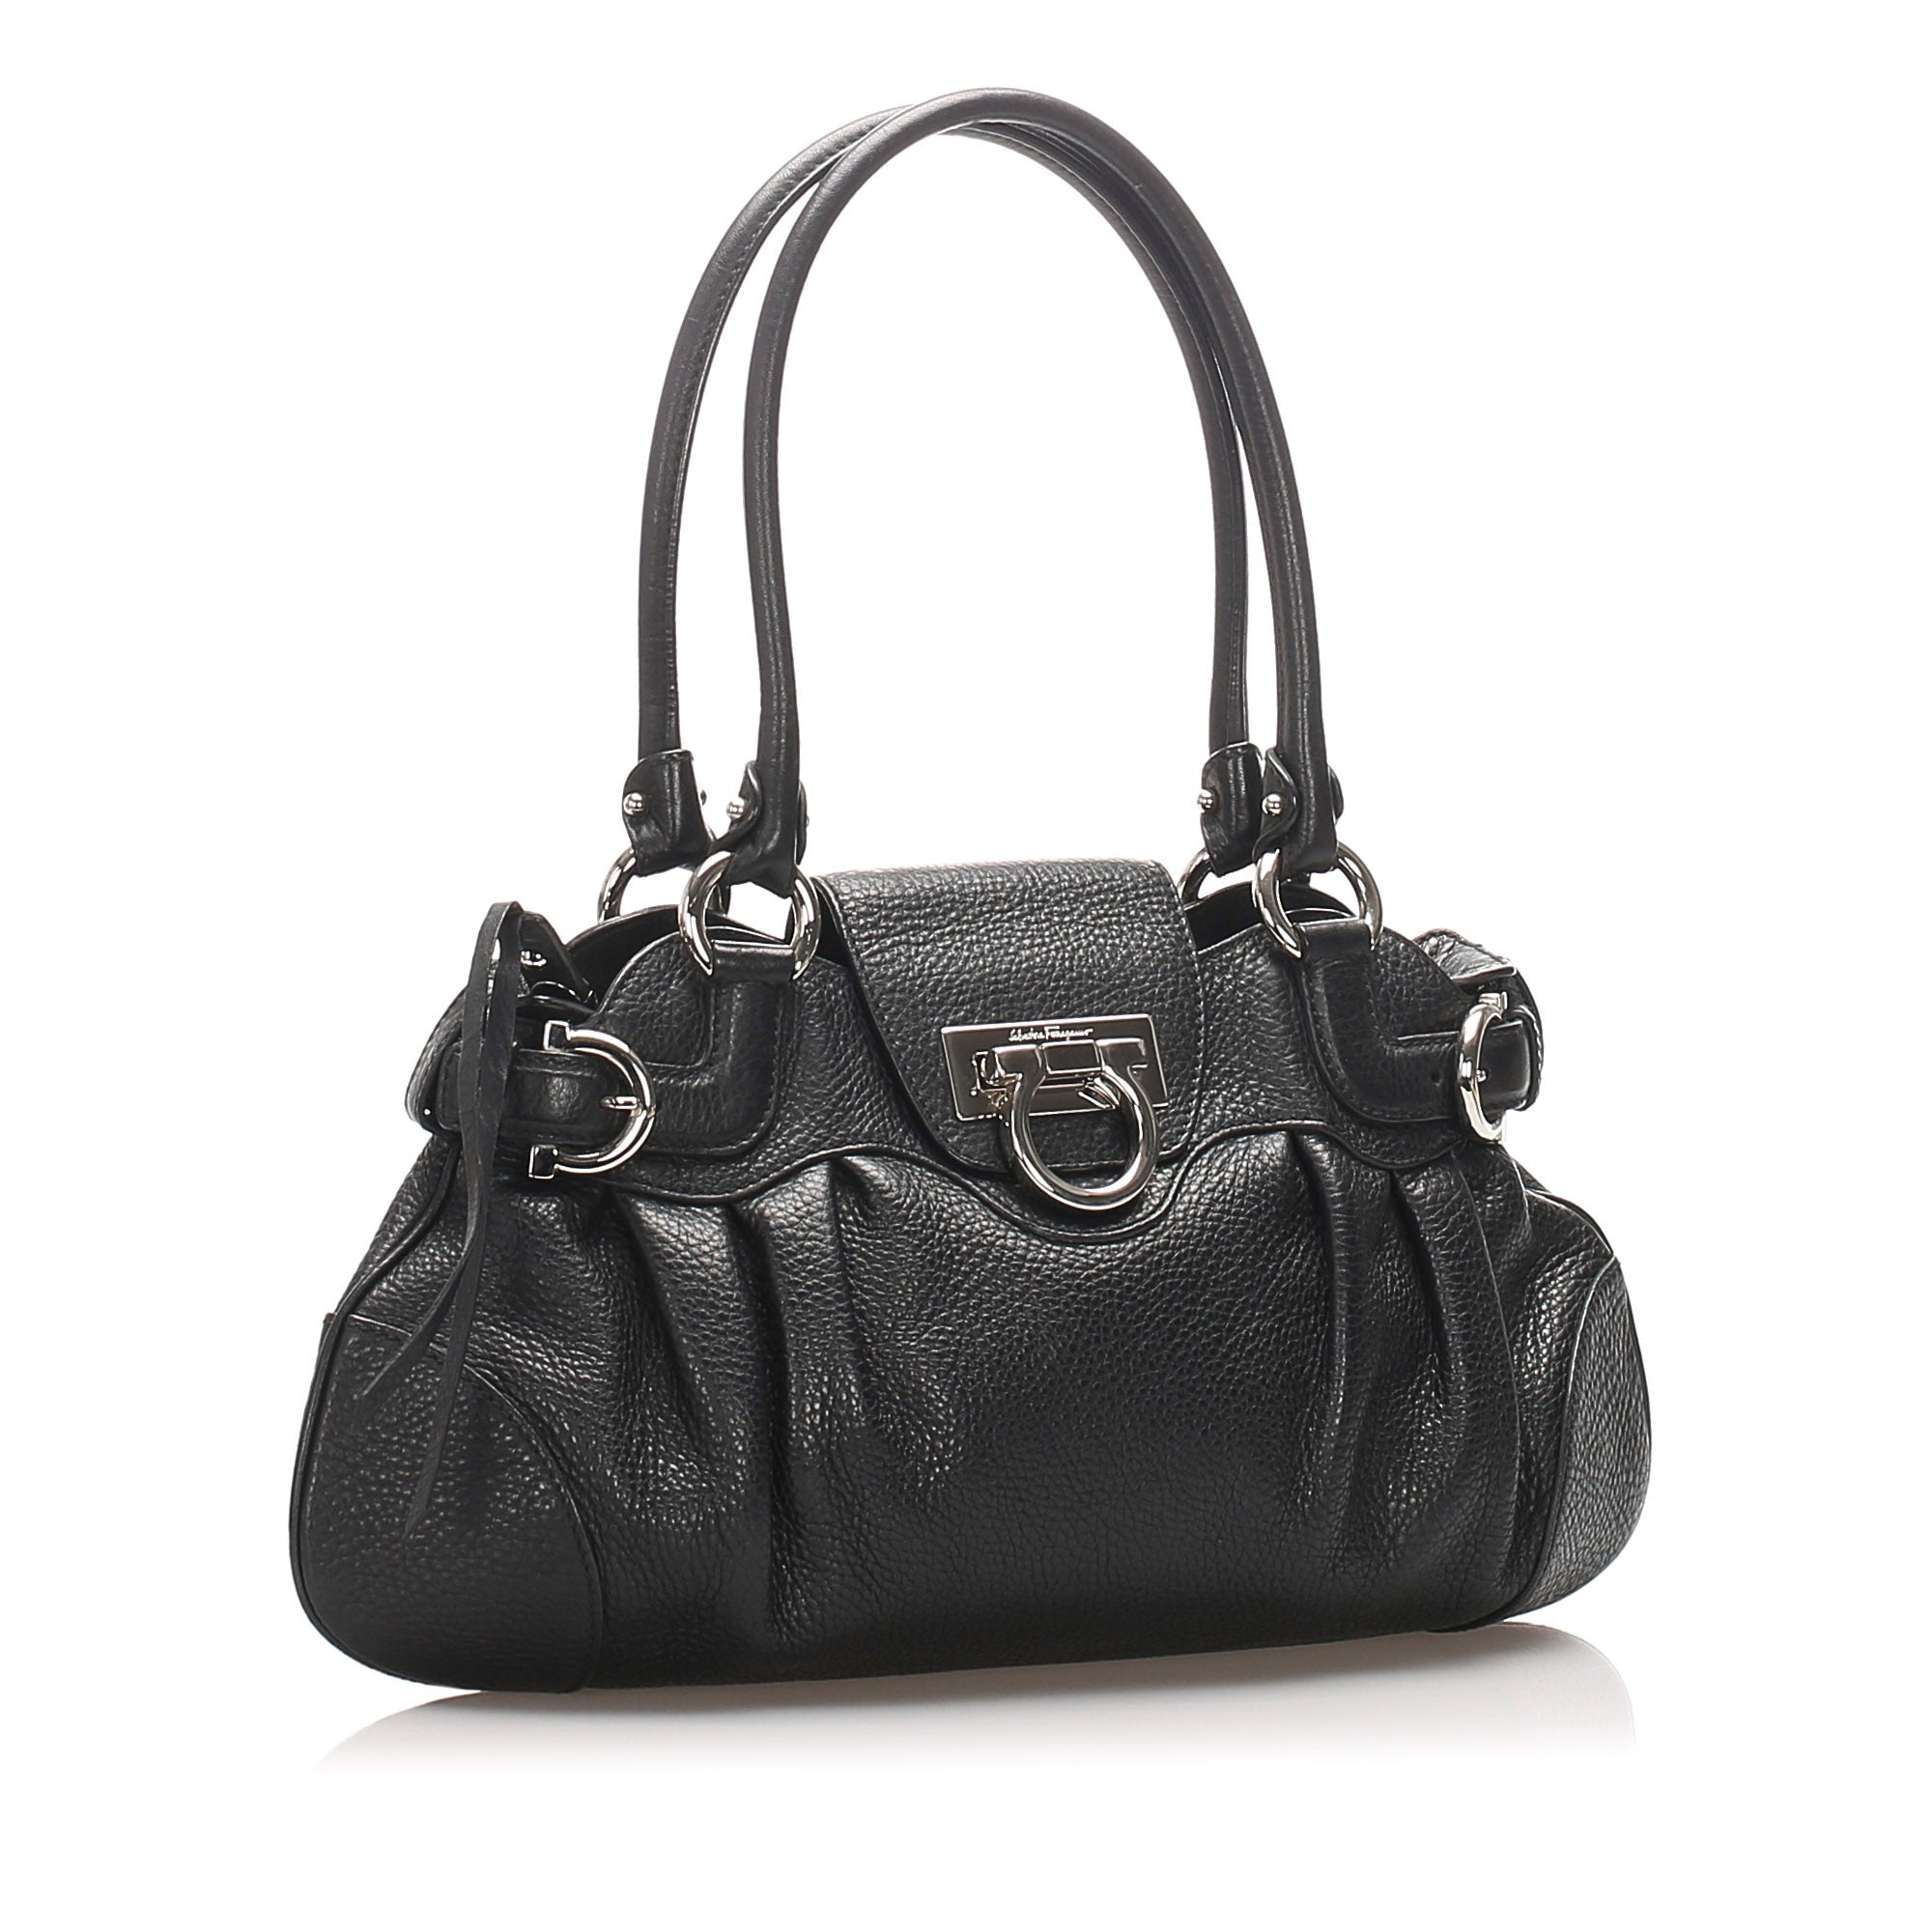 Ferragamo Black Marisa Leather Shoulder Bag